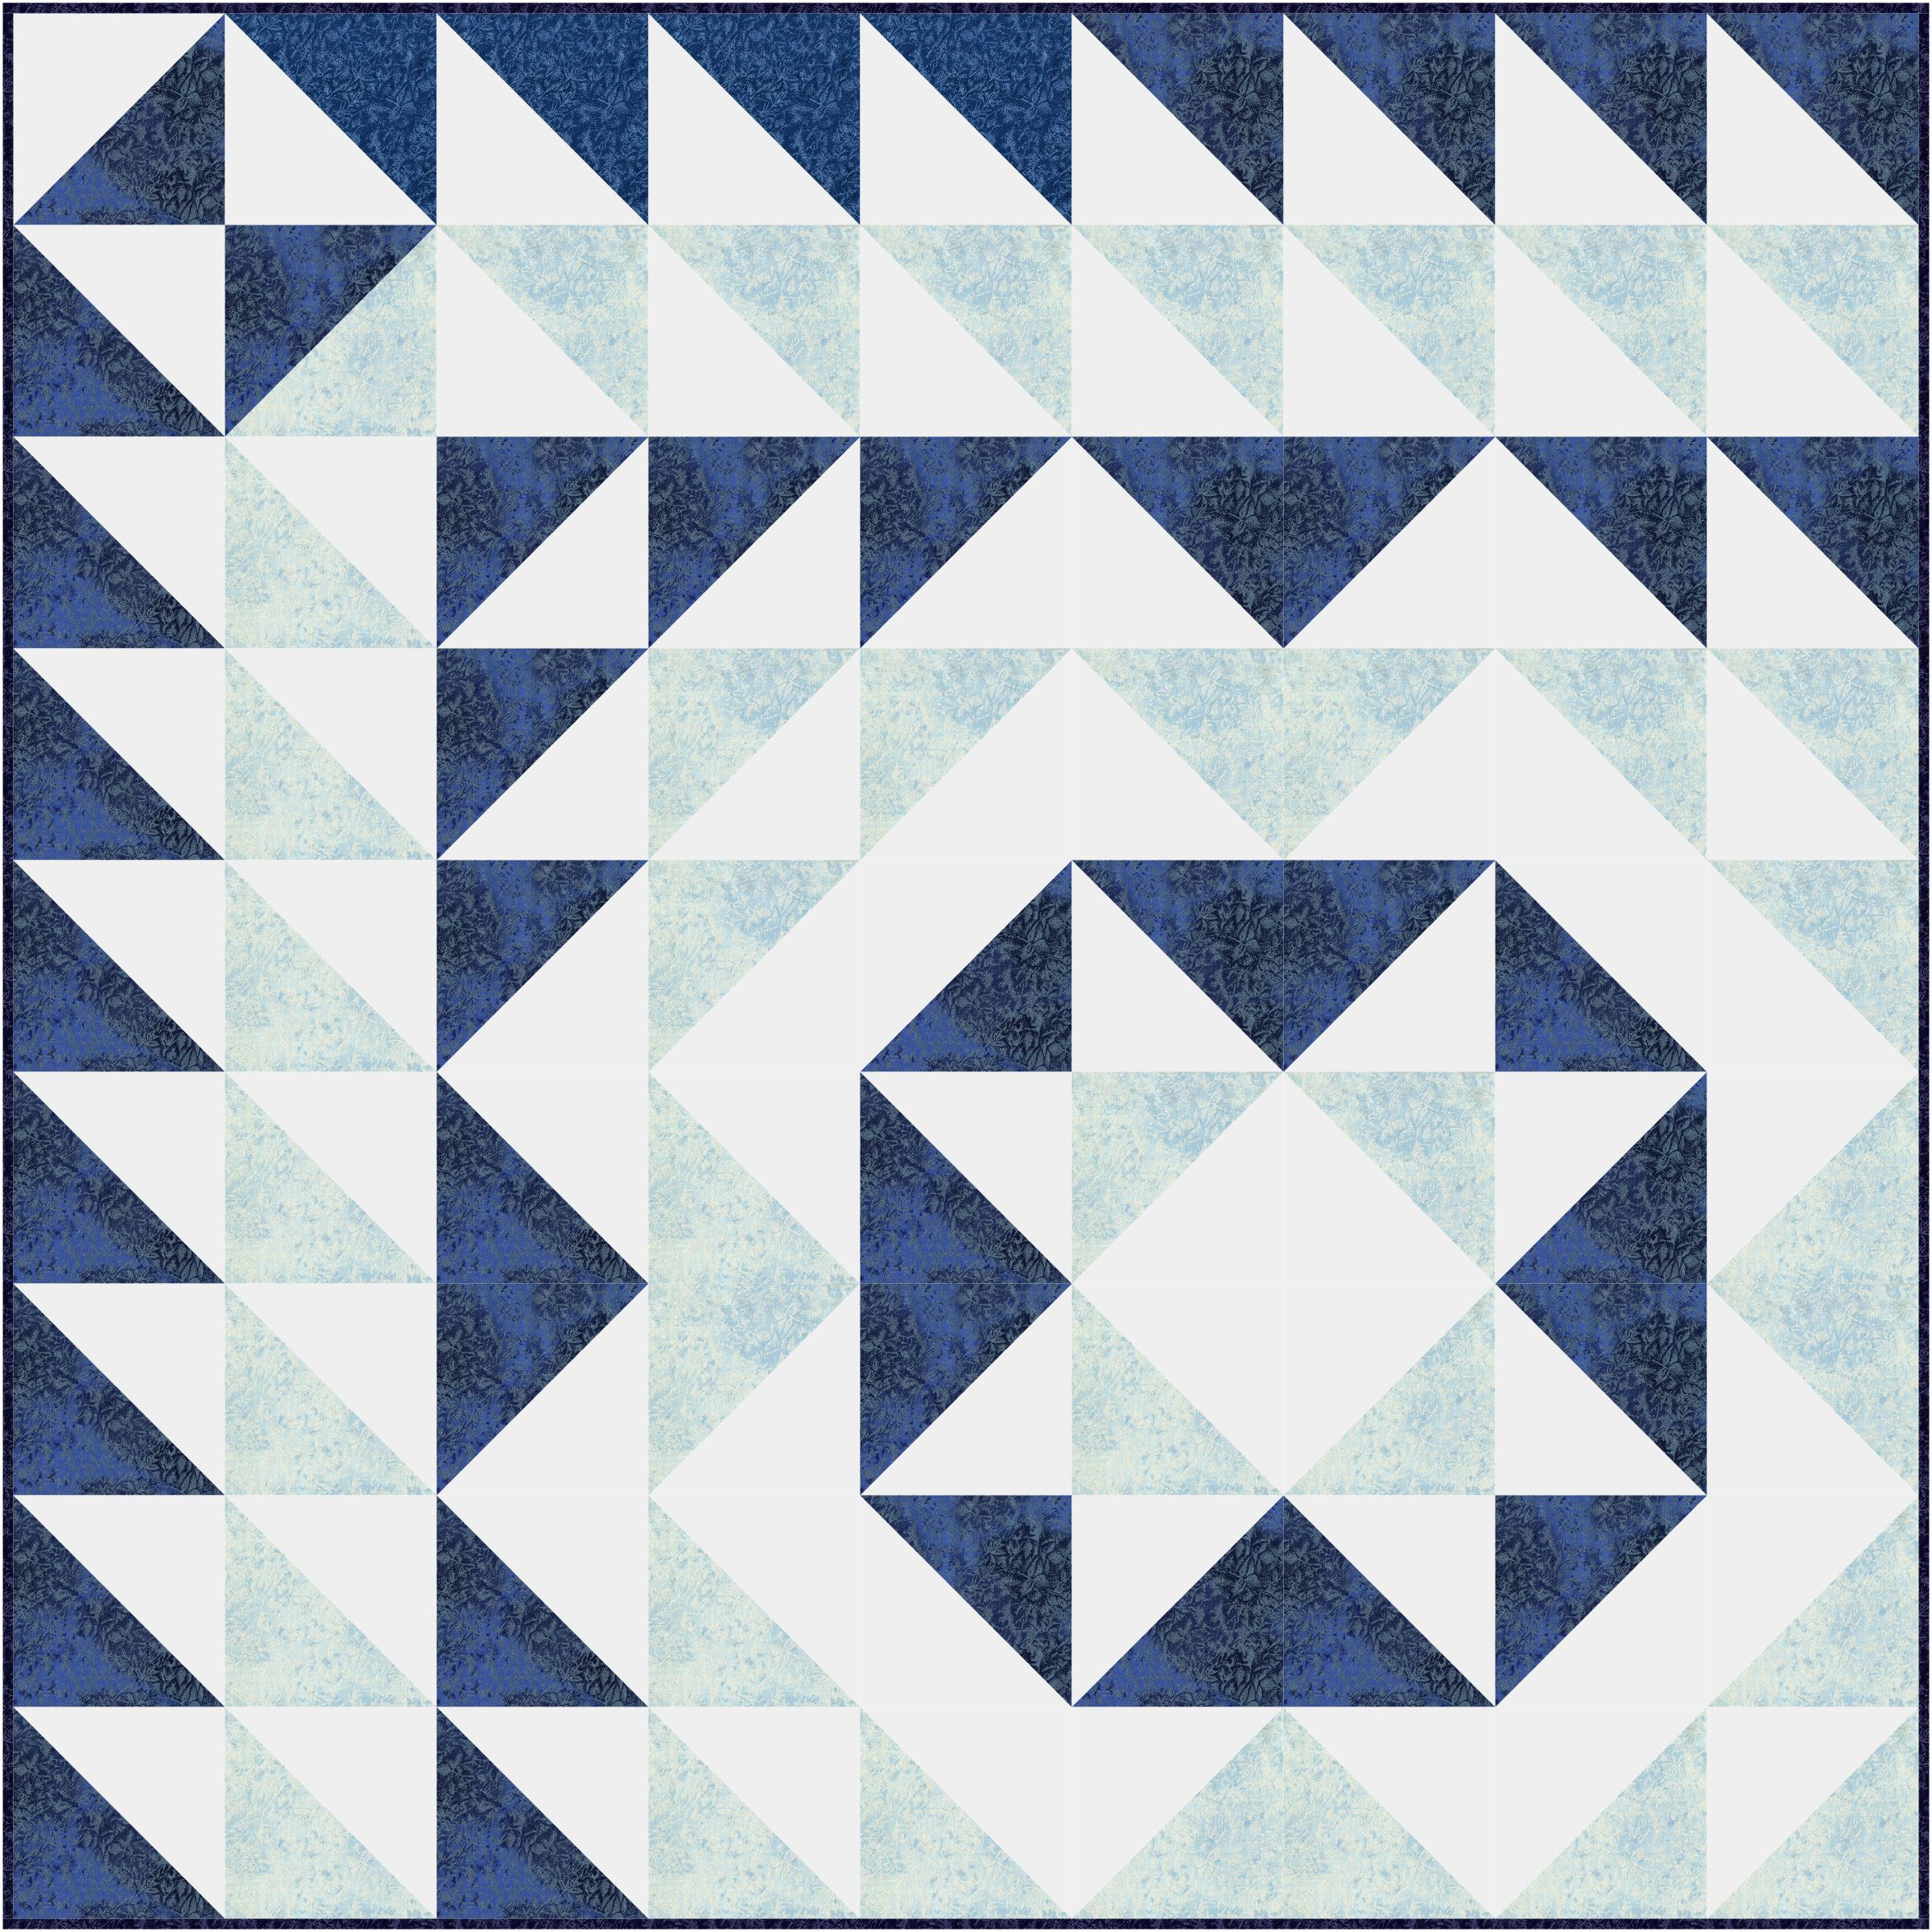 Quilts - Magazine cover